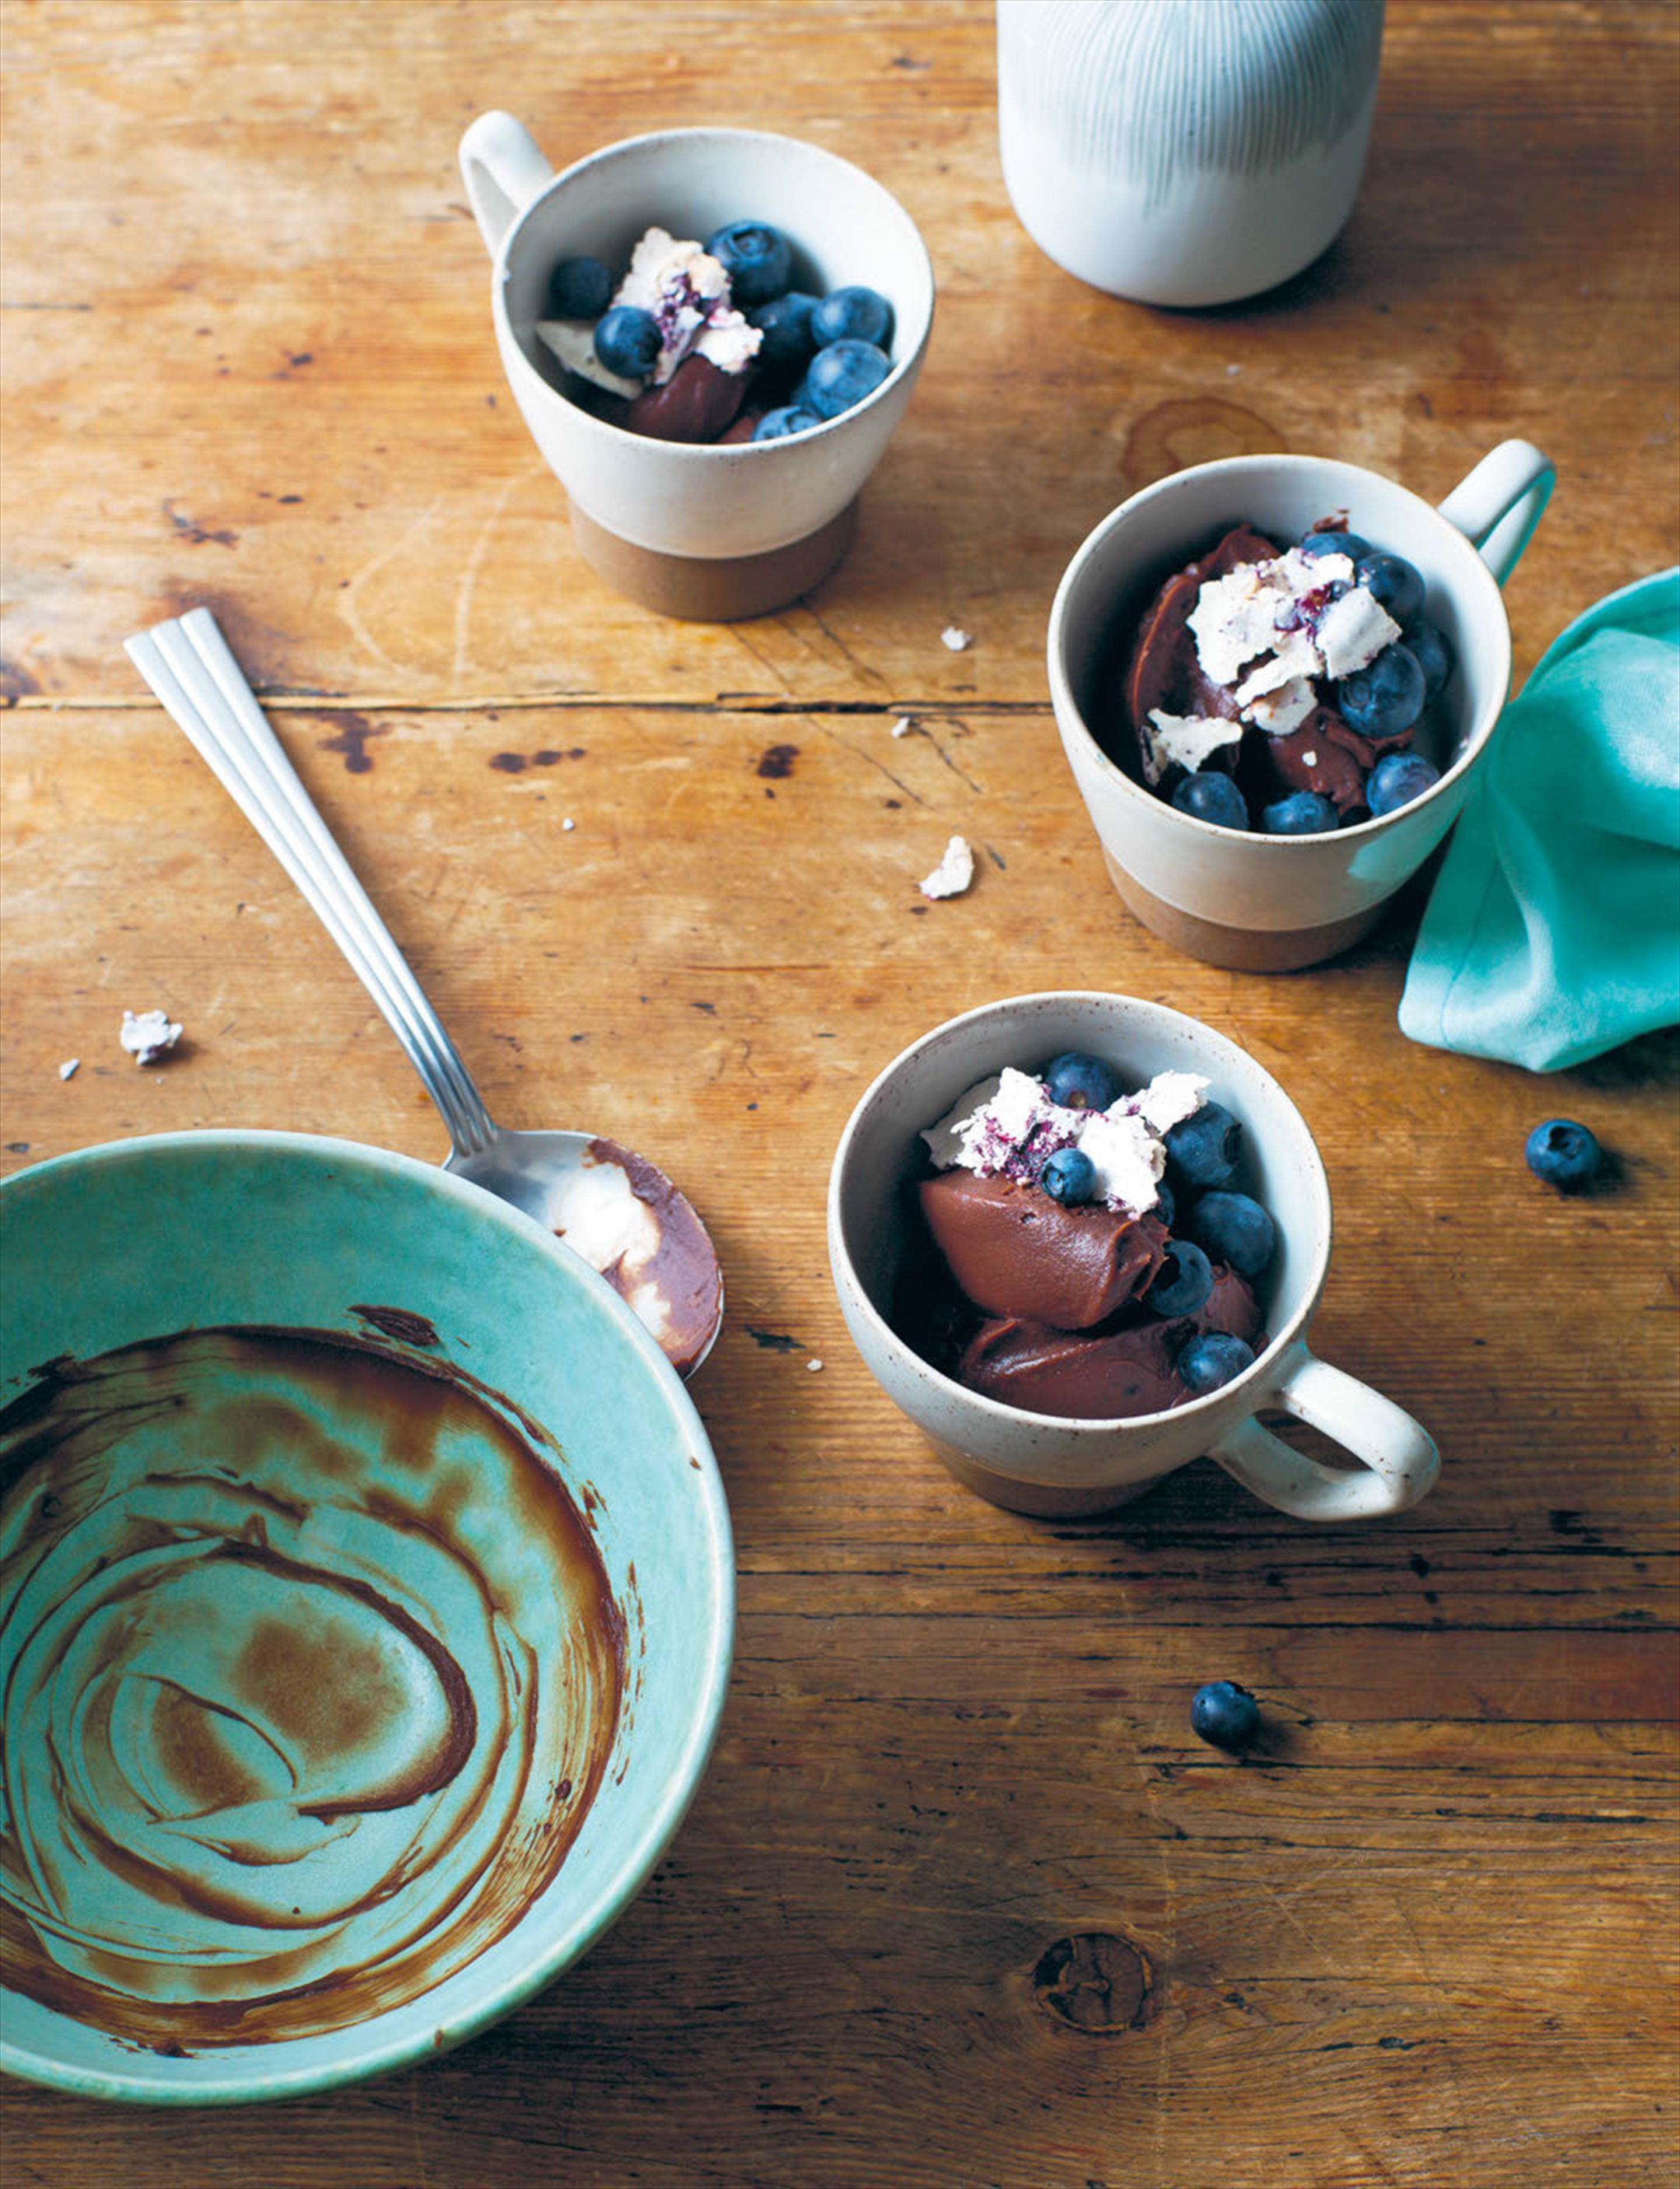 Cardamom chocolate cream, blueberries & meringue